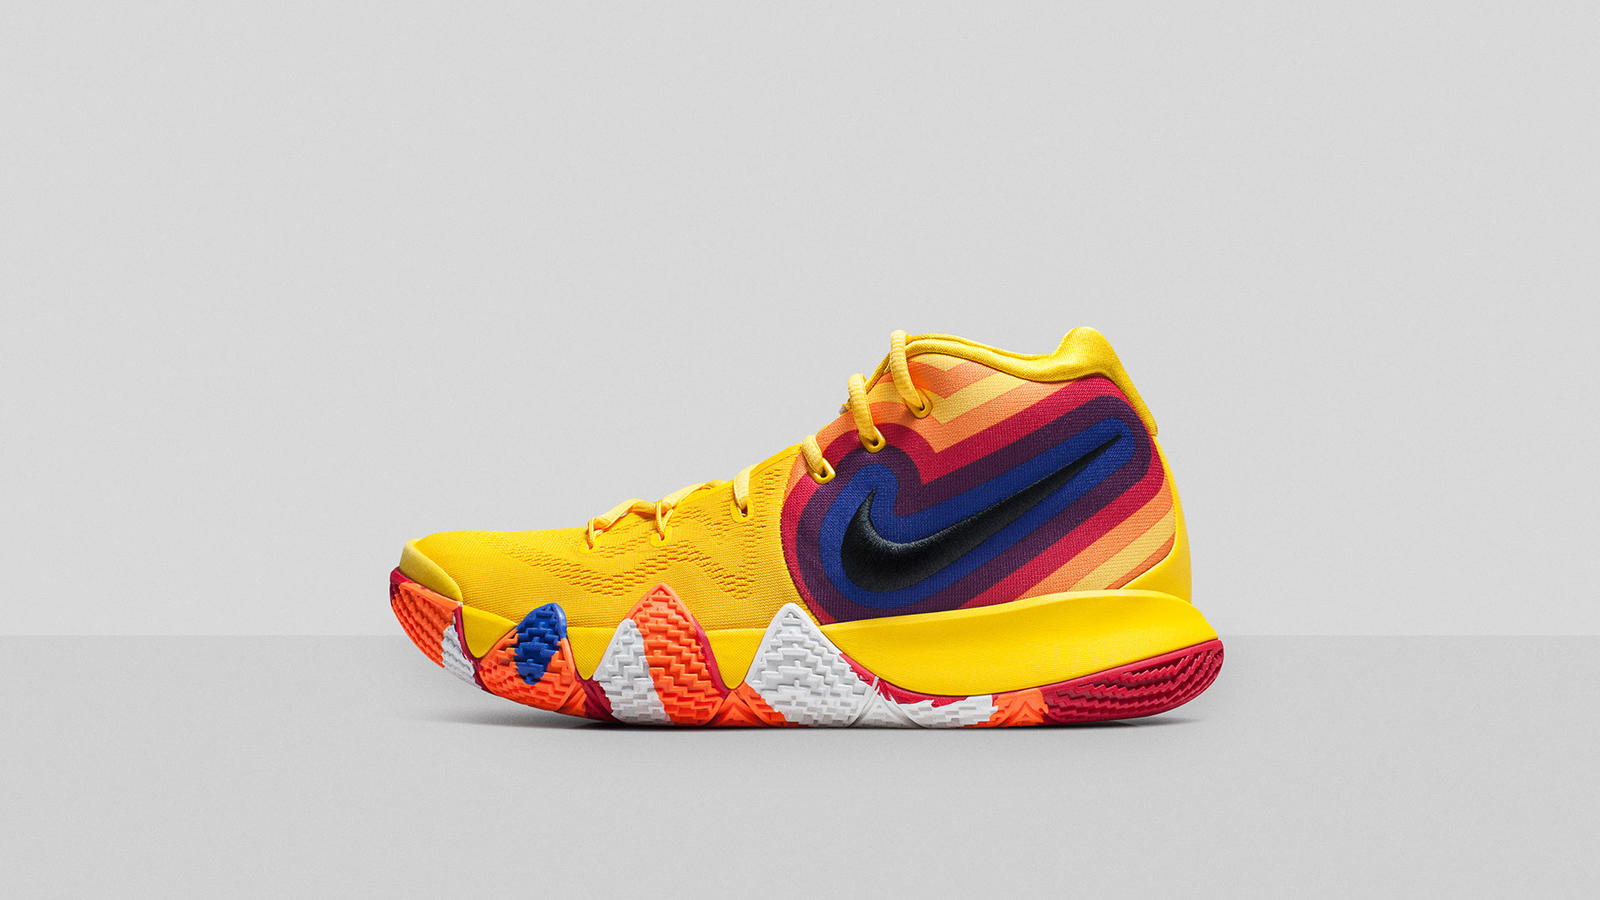 quality design 0a957 1d21c KYRIE 4 Decades Pack - Nike News